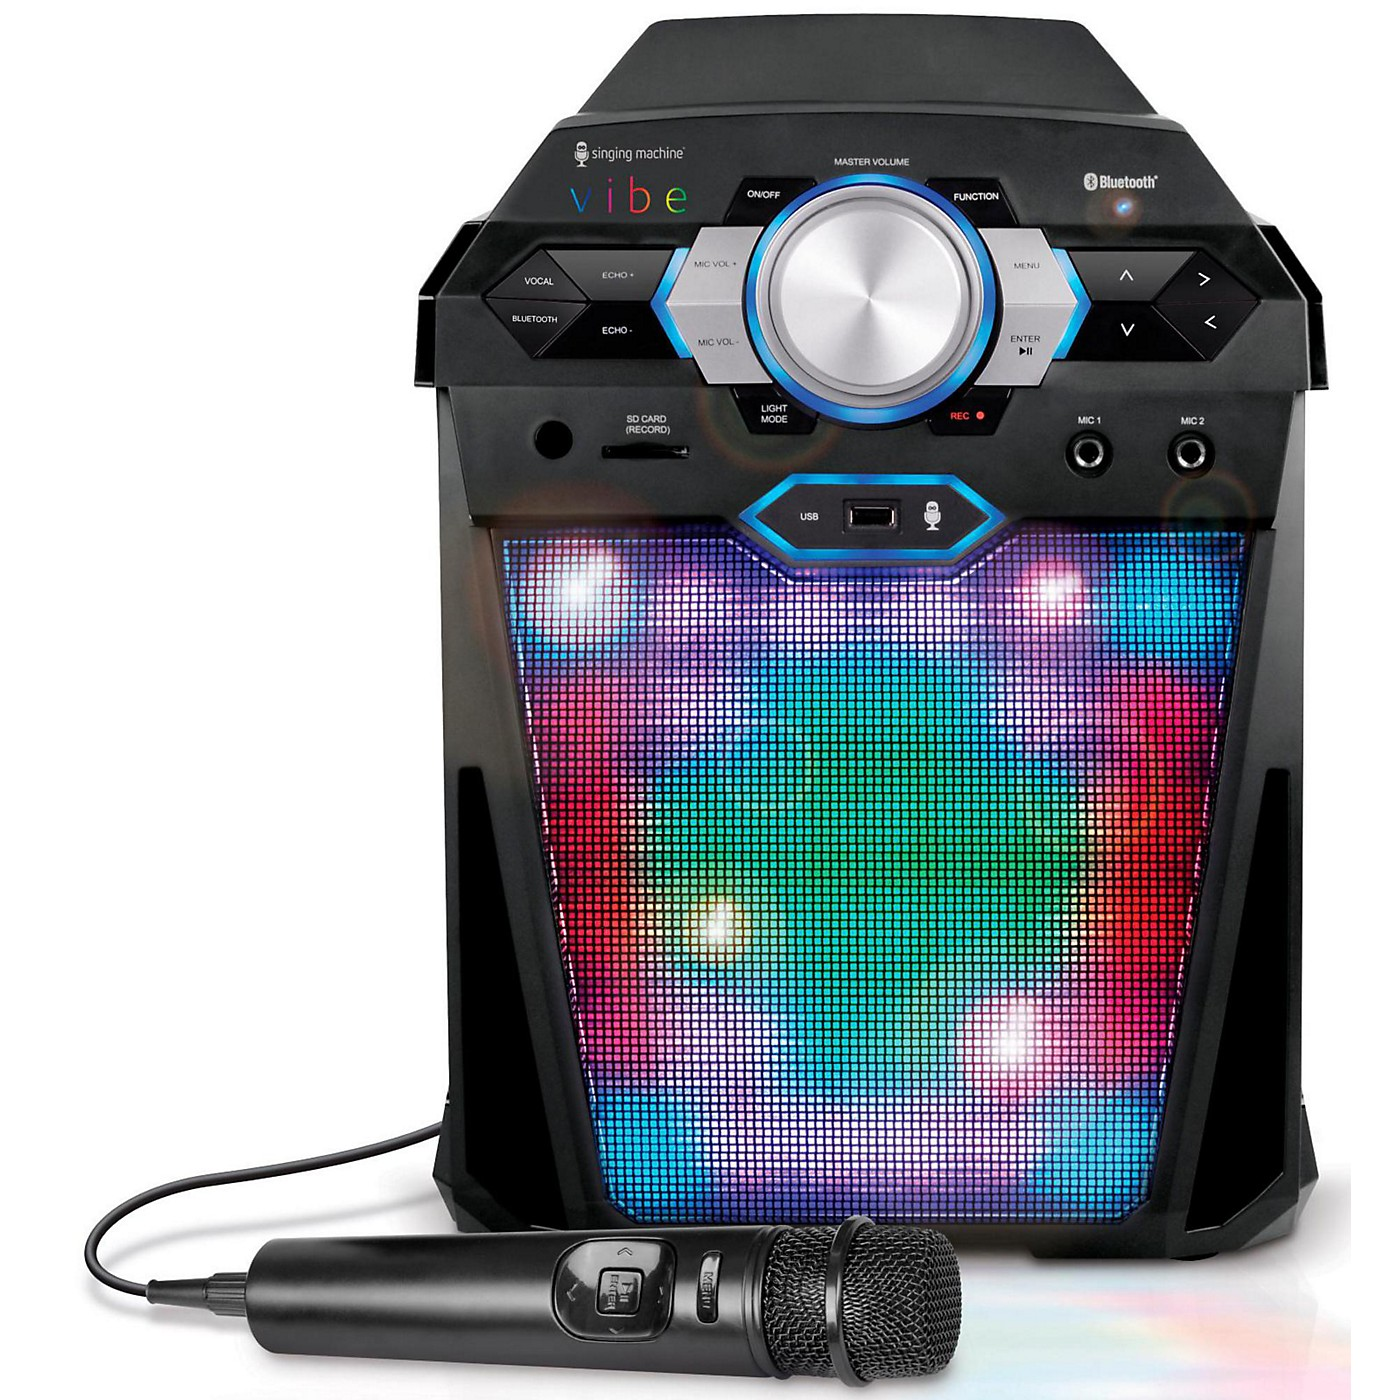 The Singing Machine VIBE Hi-Def Digital Karaoke System thumbnail